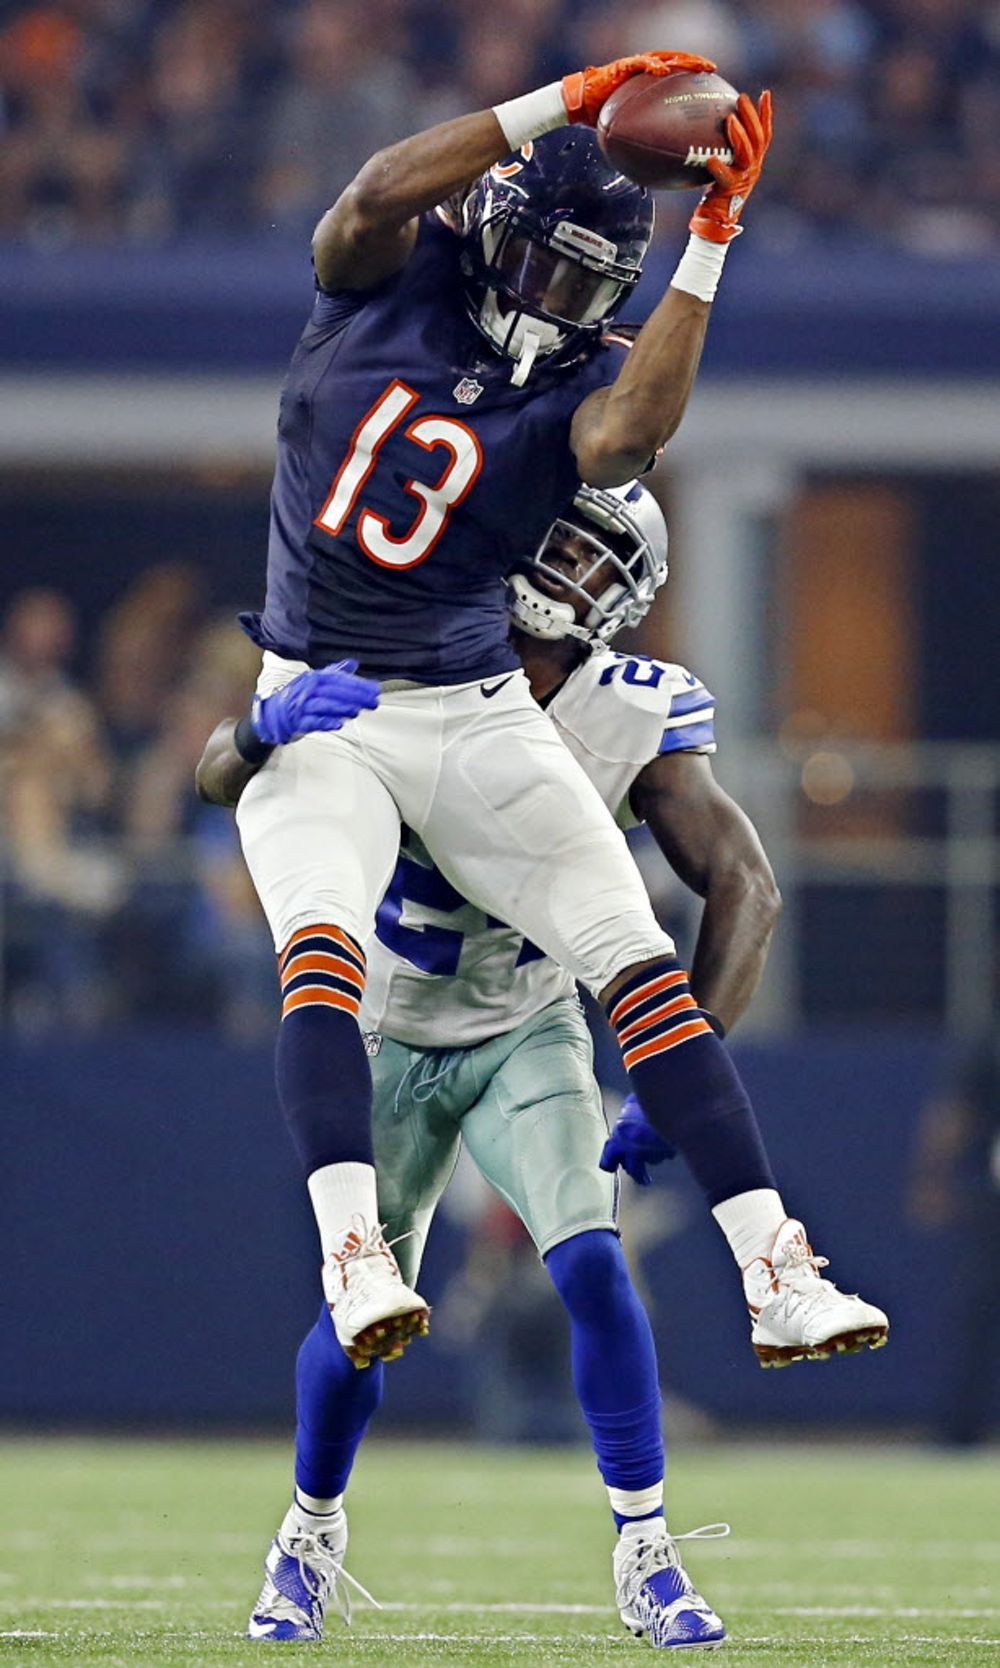 Photos Zeke leaps over Bears; Cole Beasley destroyed, but